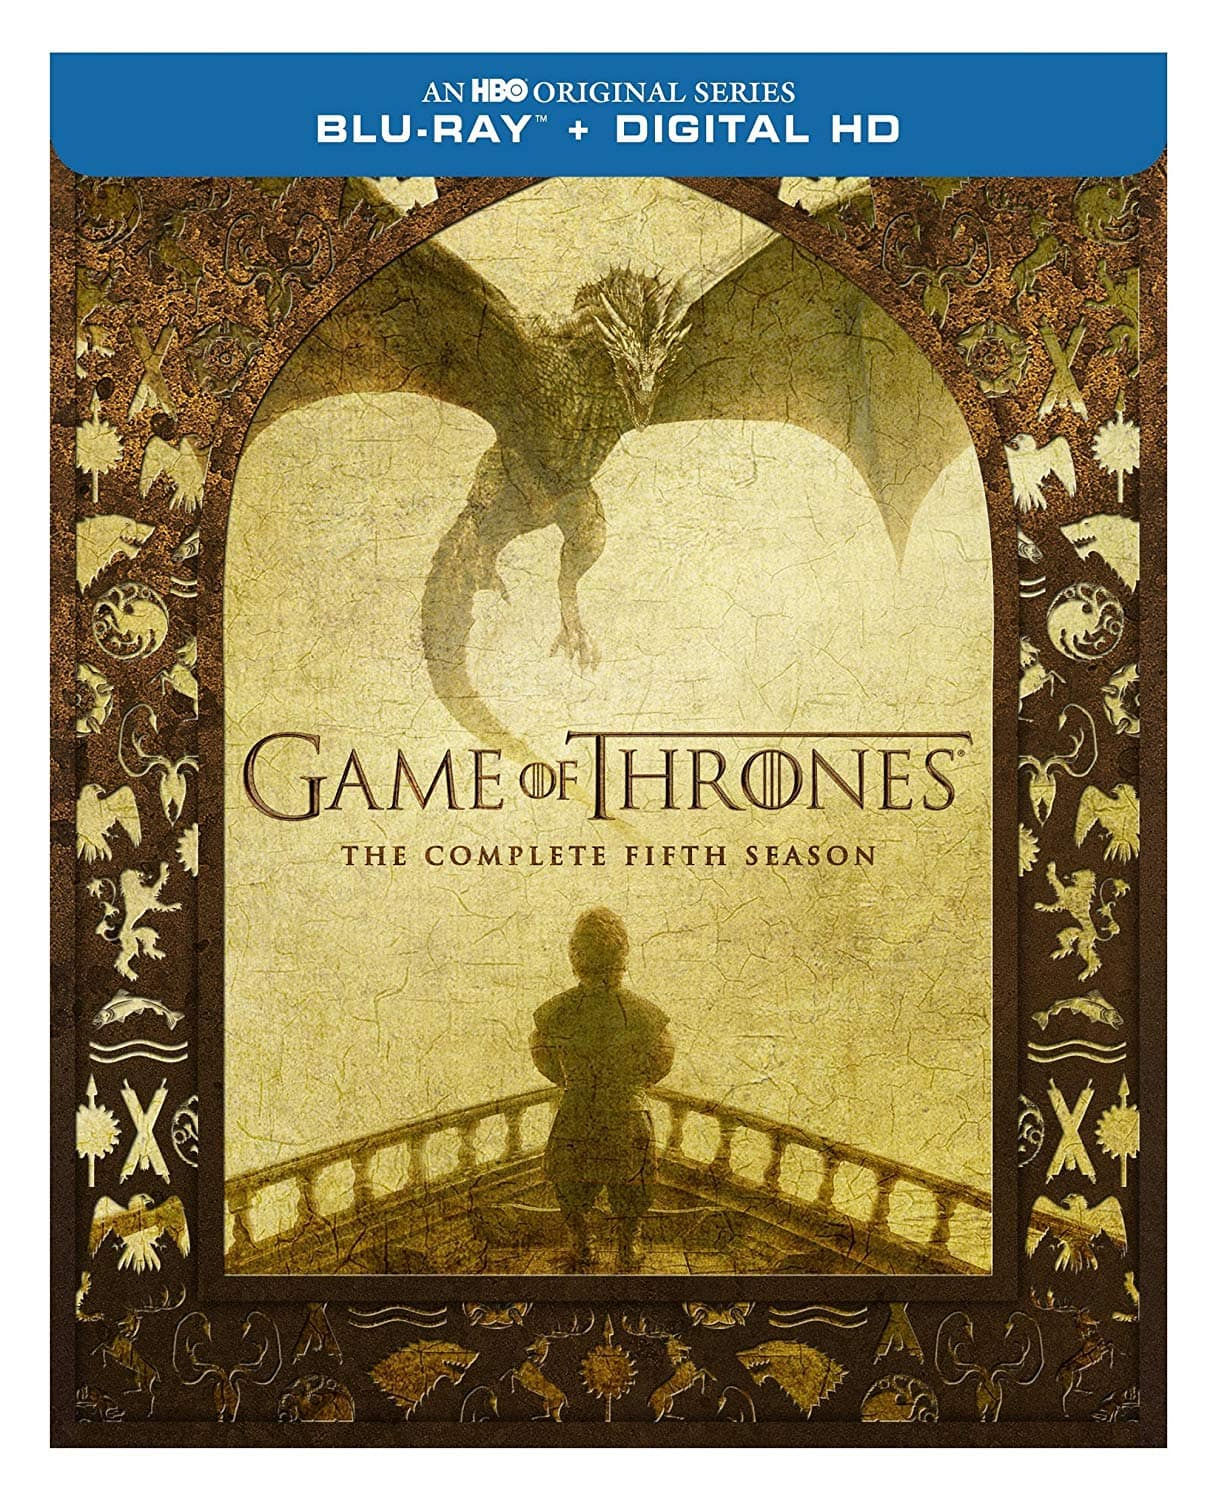 Game of Thrones: The Complete Second, Fourth, Fifth or Seventh Season (Blu-ray + Digital HD) $9.99 Each + Free In-Store Pickup